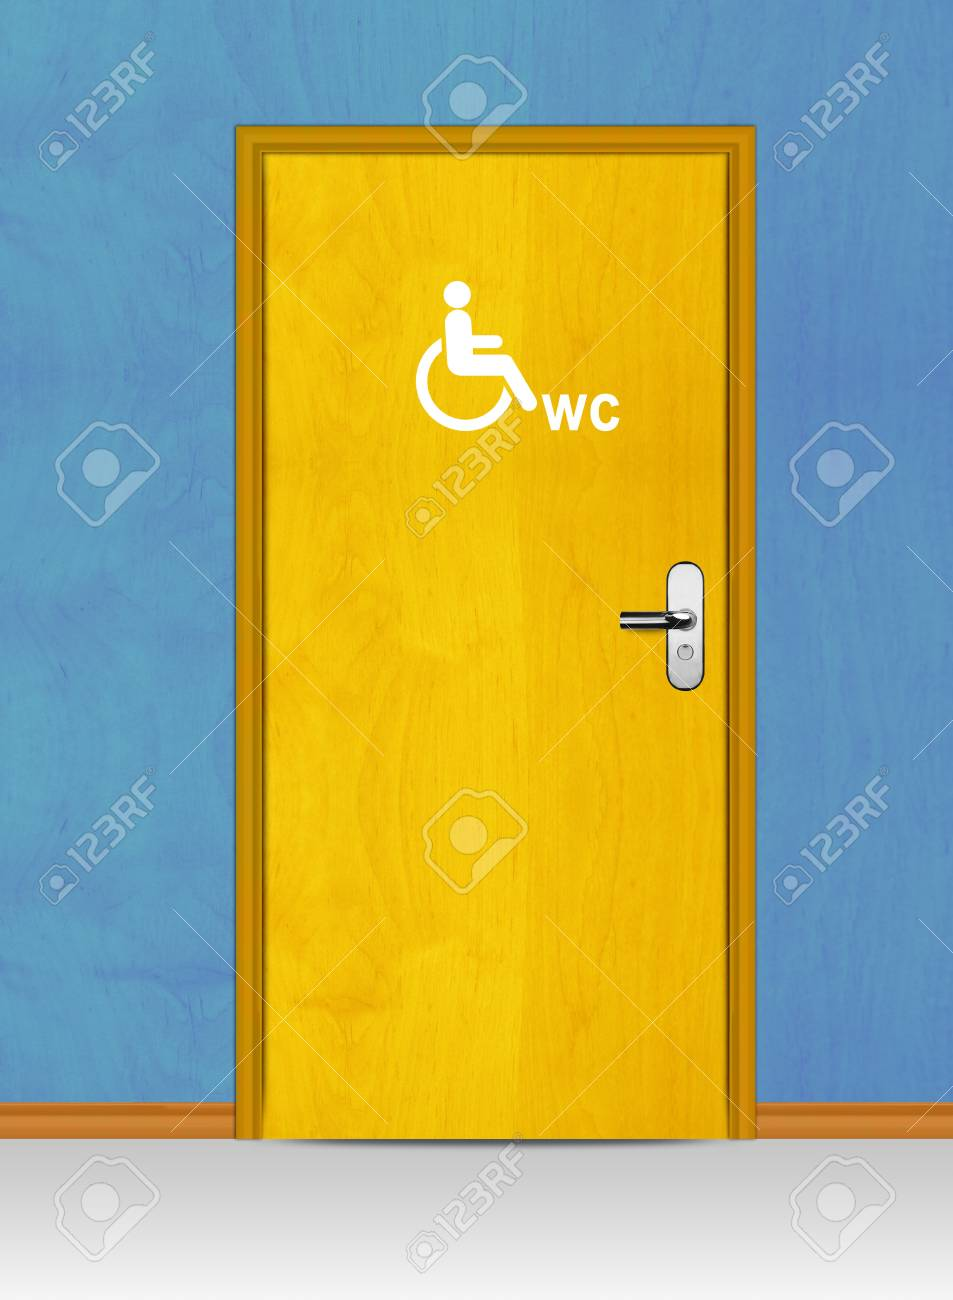 Sign of public toilets WC on wooden door Stock Photo - 13299297